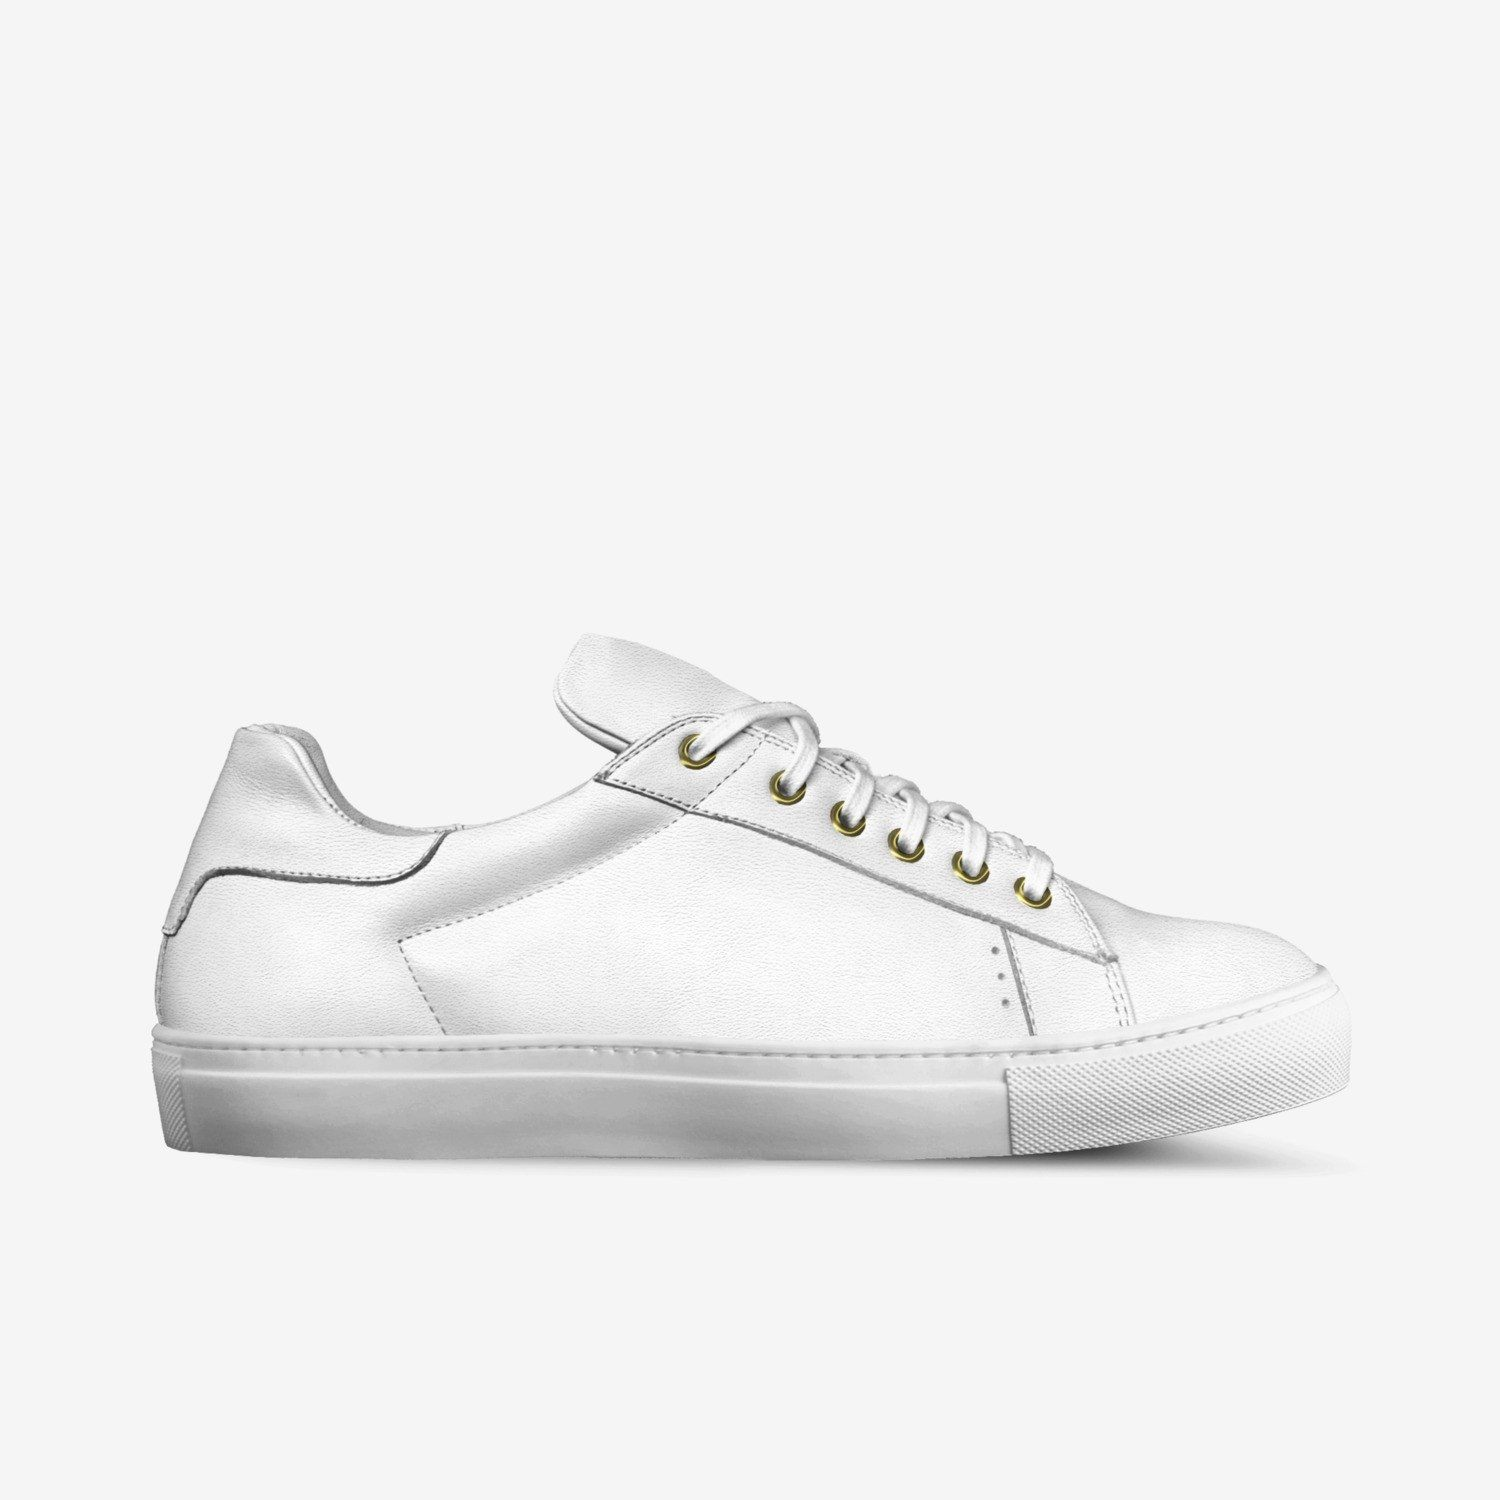 LORENZO LEATHER SNEAKERS IN MILK WHITE | Poor Little Rich Boy Clothing